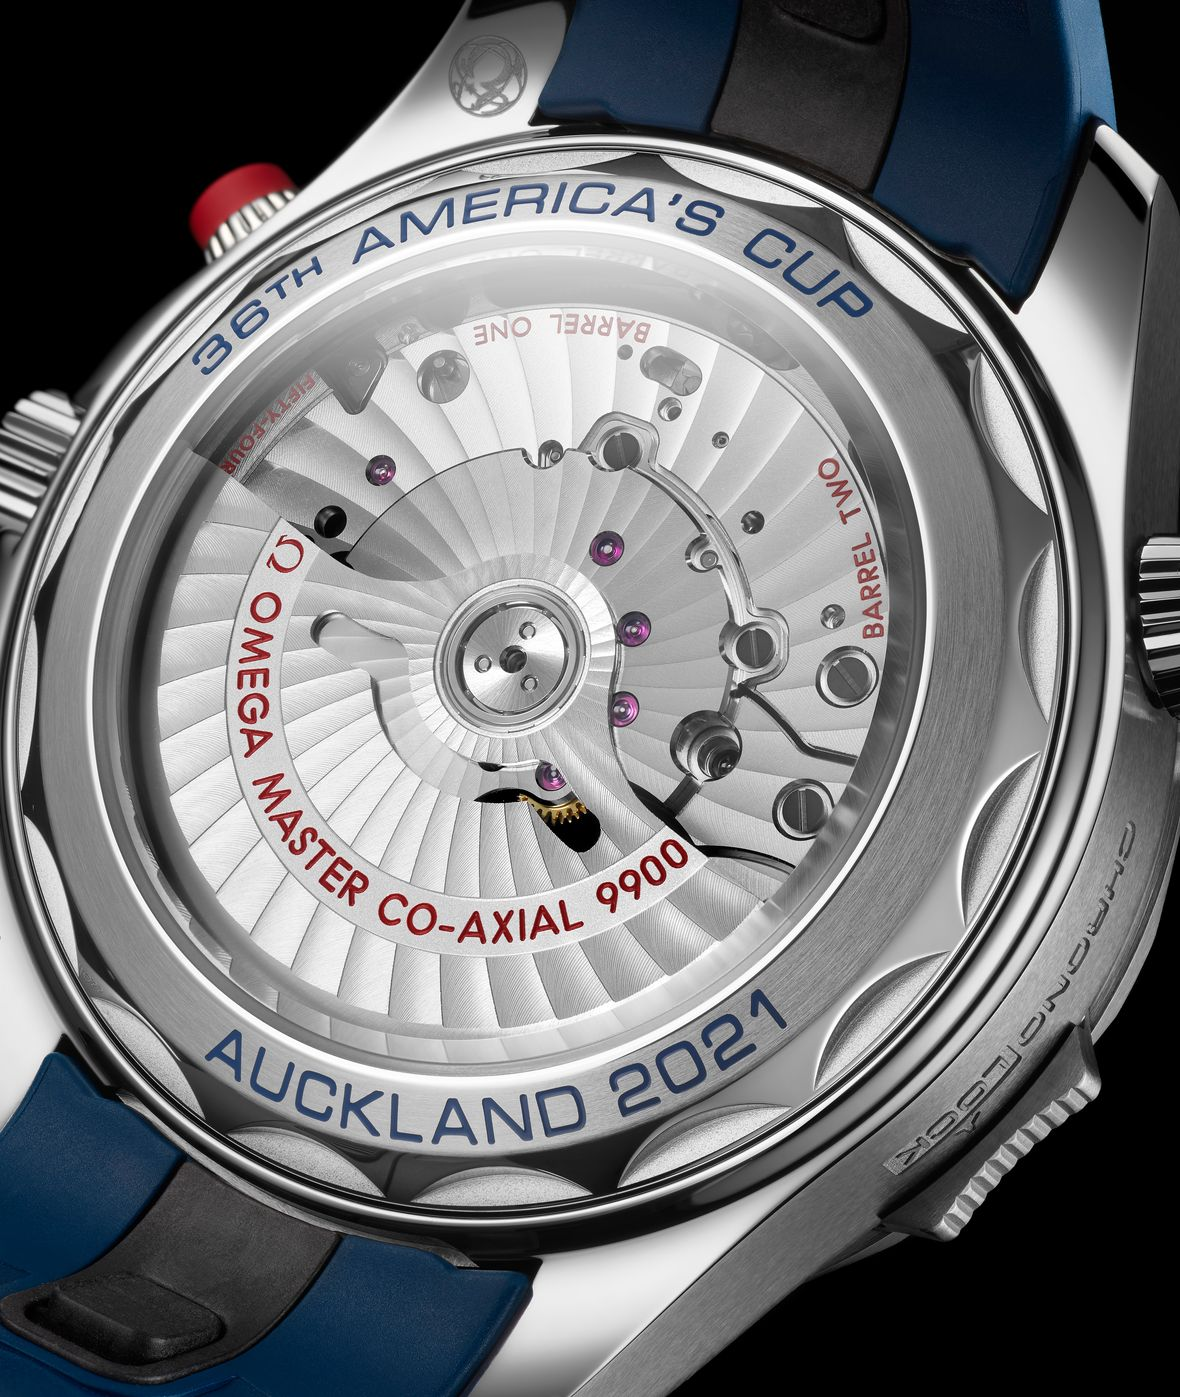 Omega Seamaster Diver 300M America's Cup Chronograph - Caliber 9900 Movement Co-Axial Master Chronometer